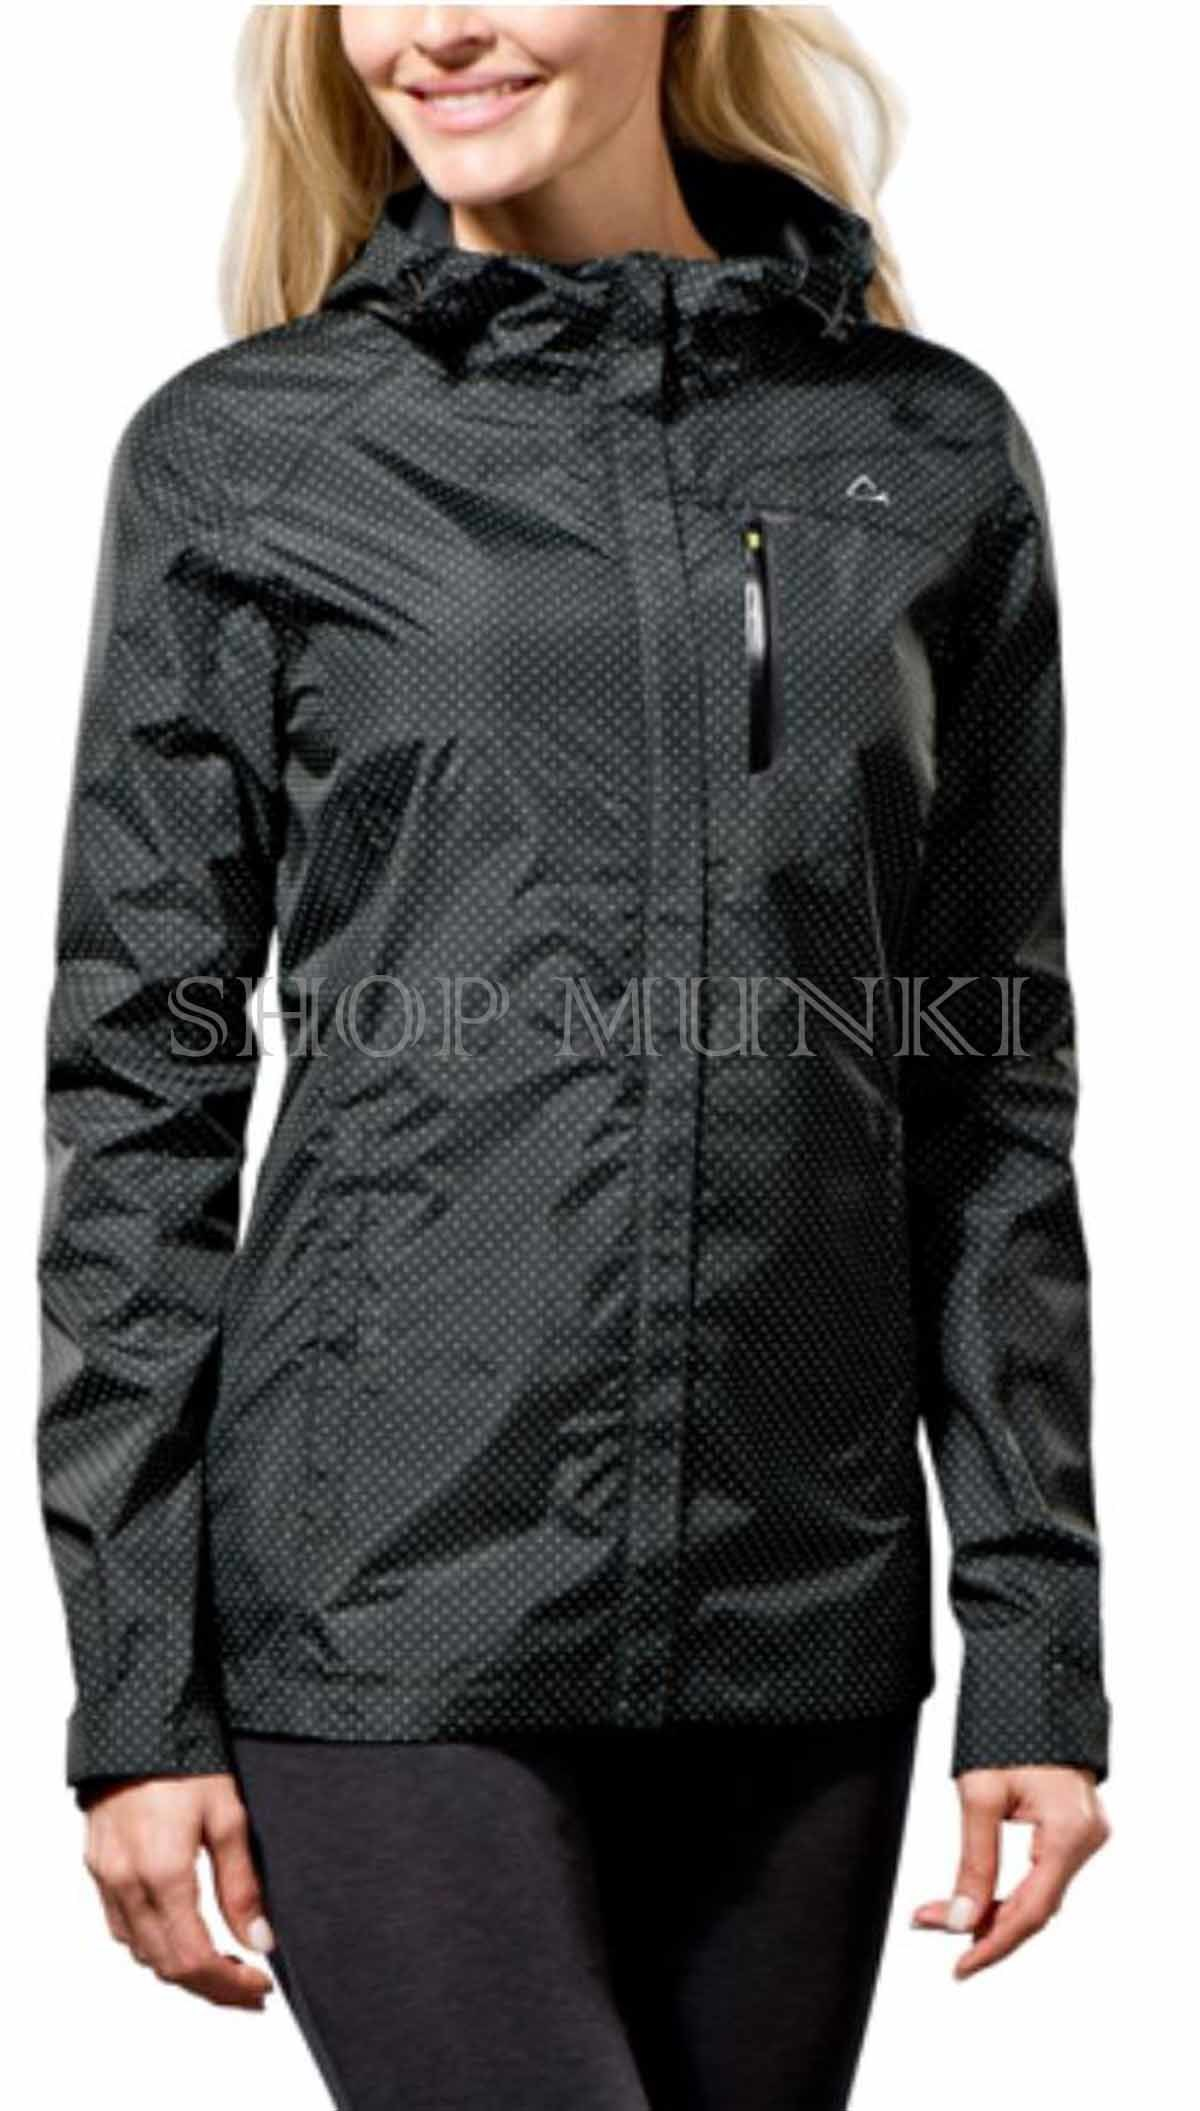 Paradox 2 5 Women S Waterproof Breathable Windproof